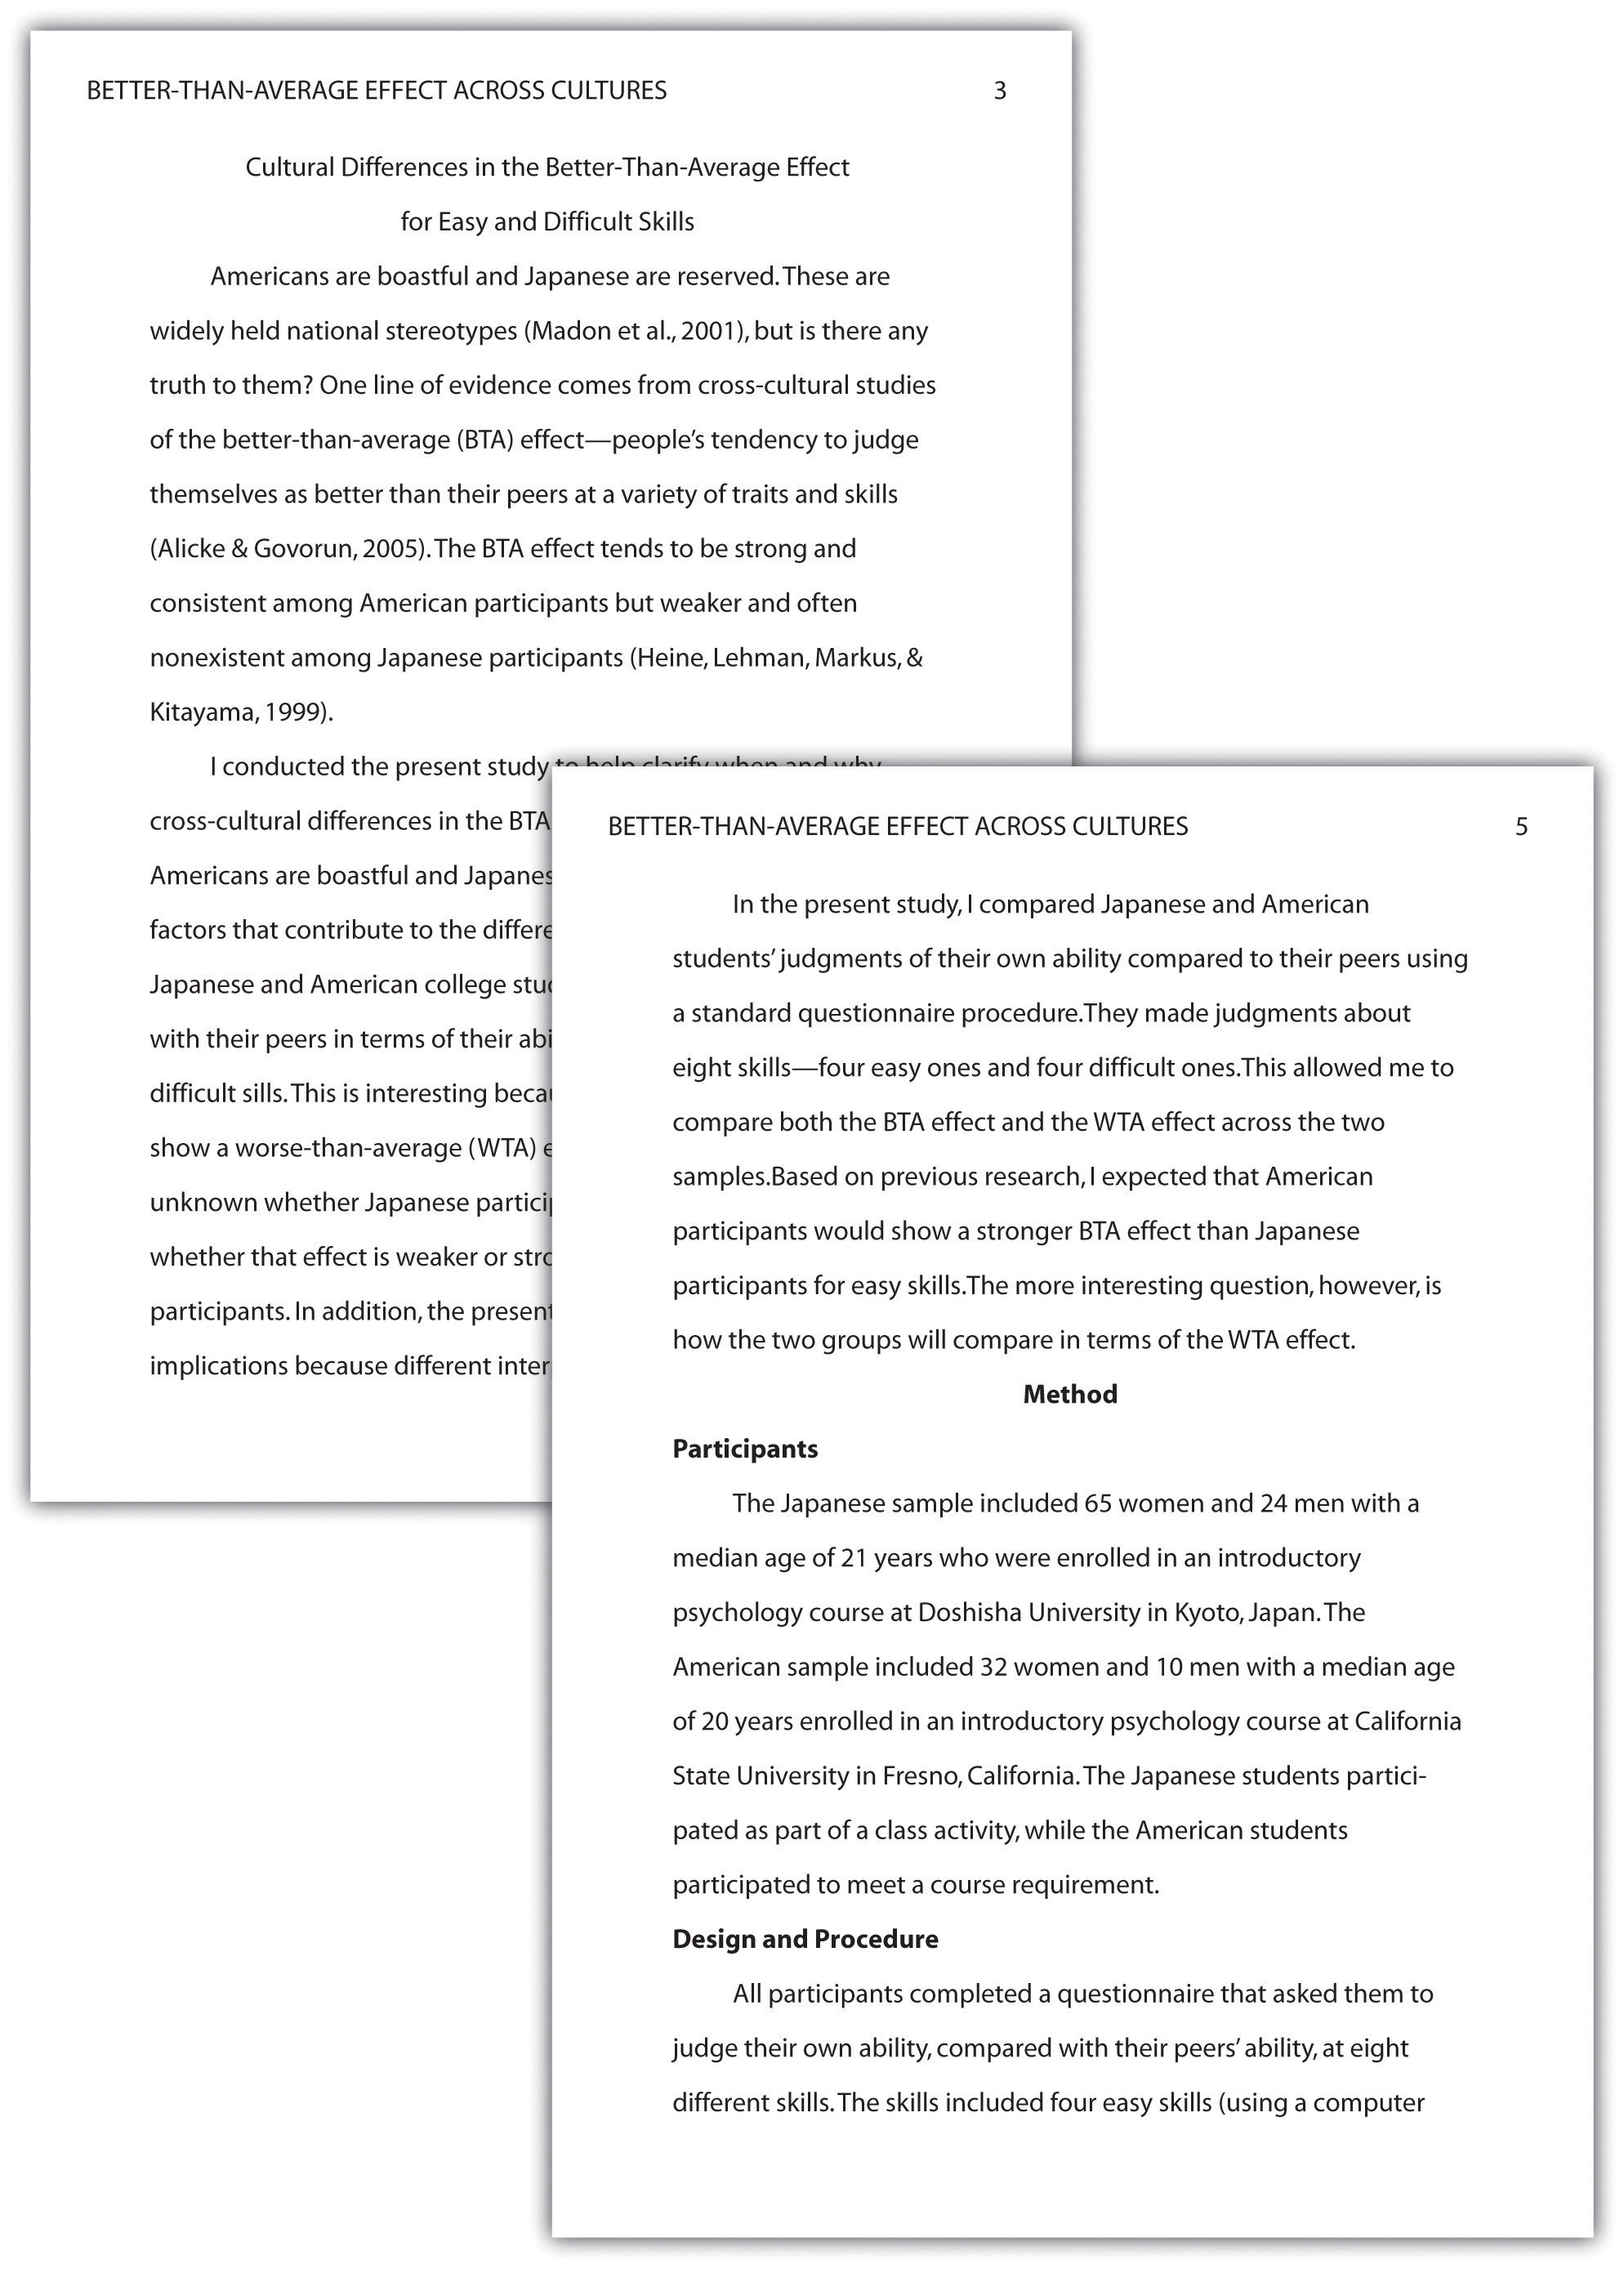 apa format examples want templates - Apa Format Essay Sample